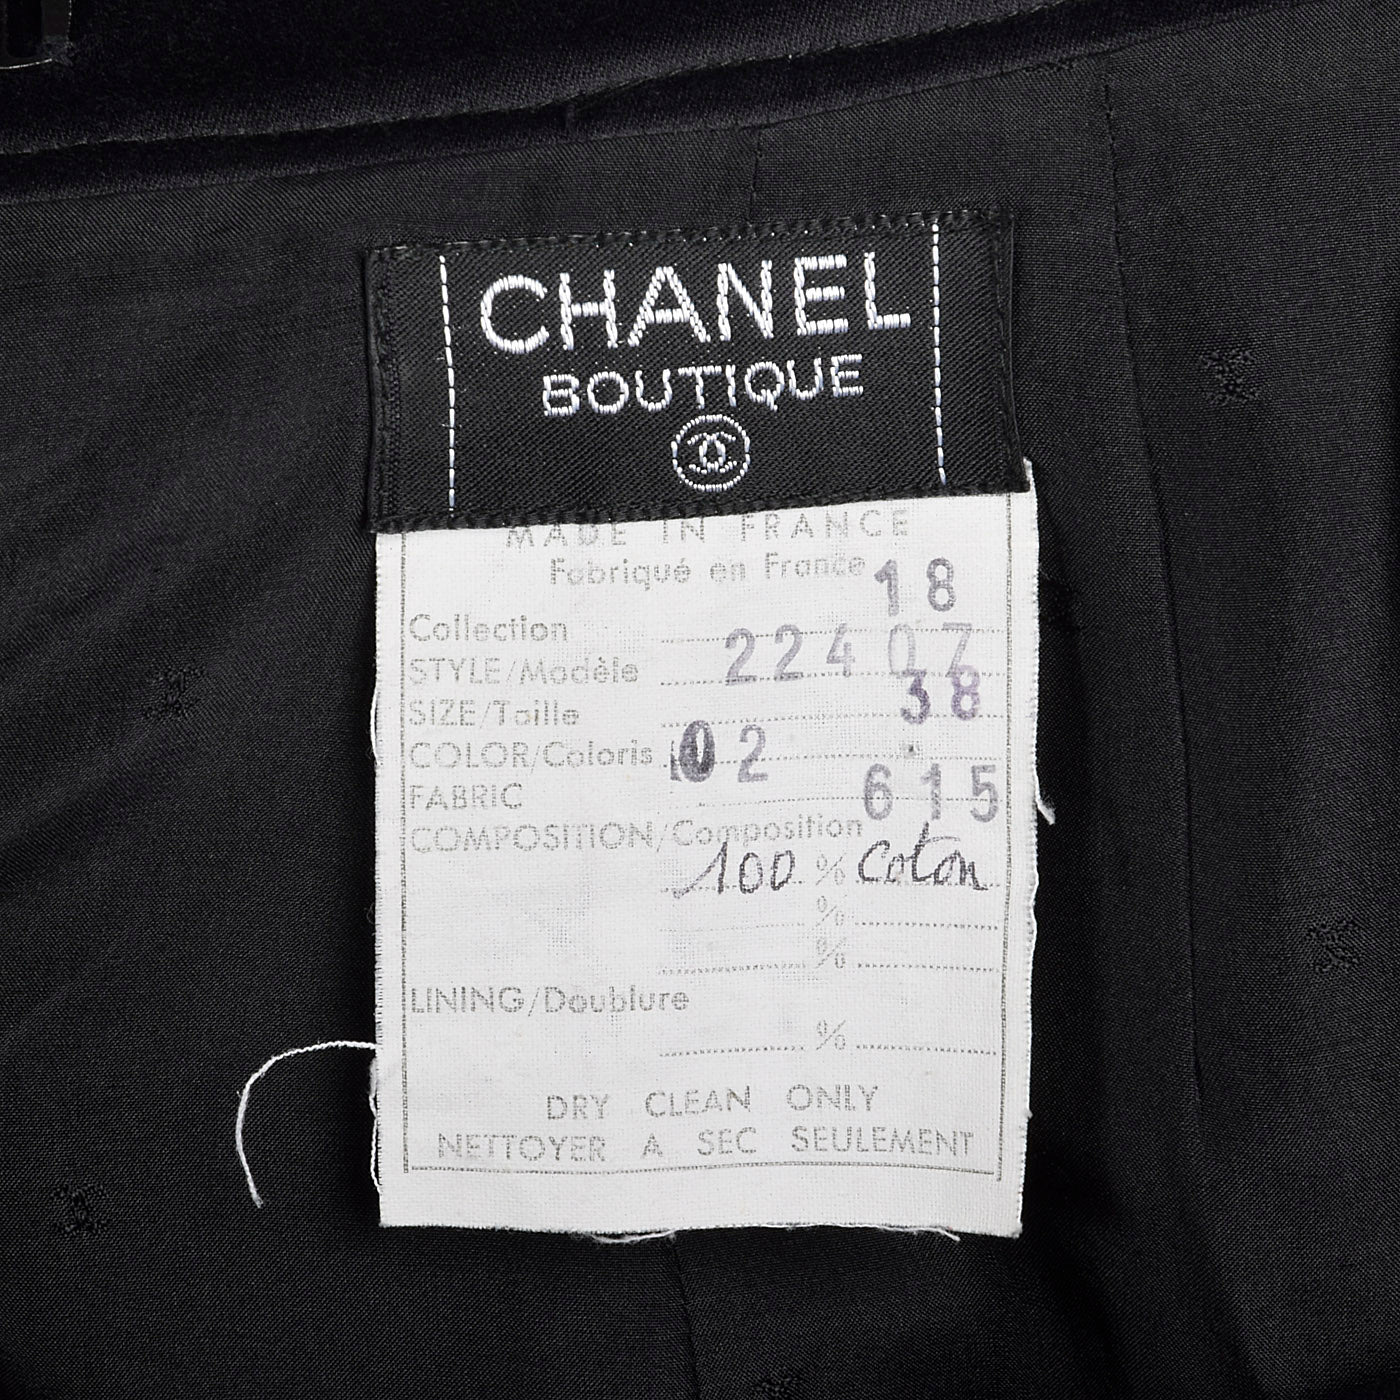 1980s Chanel Black Cotton Summer Skirt Suit with Gold Buckle Detail